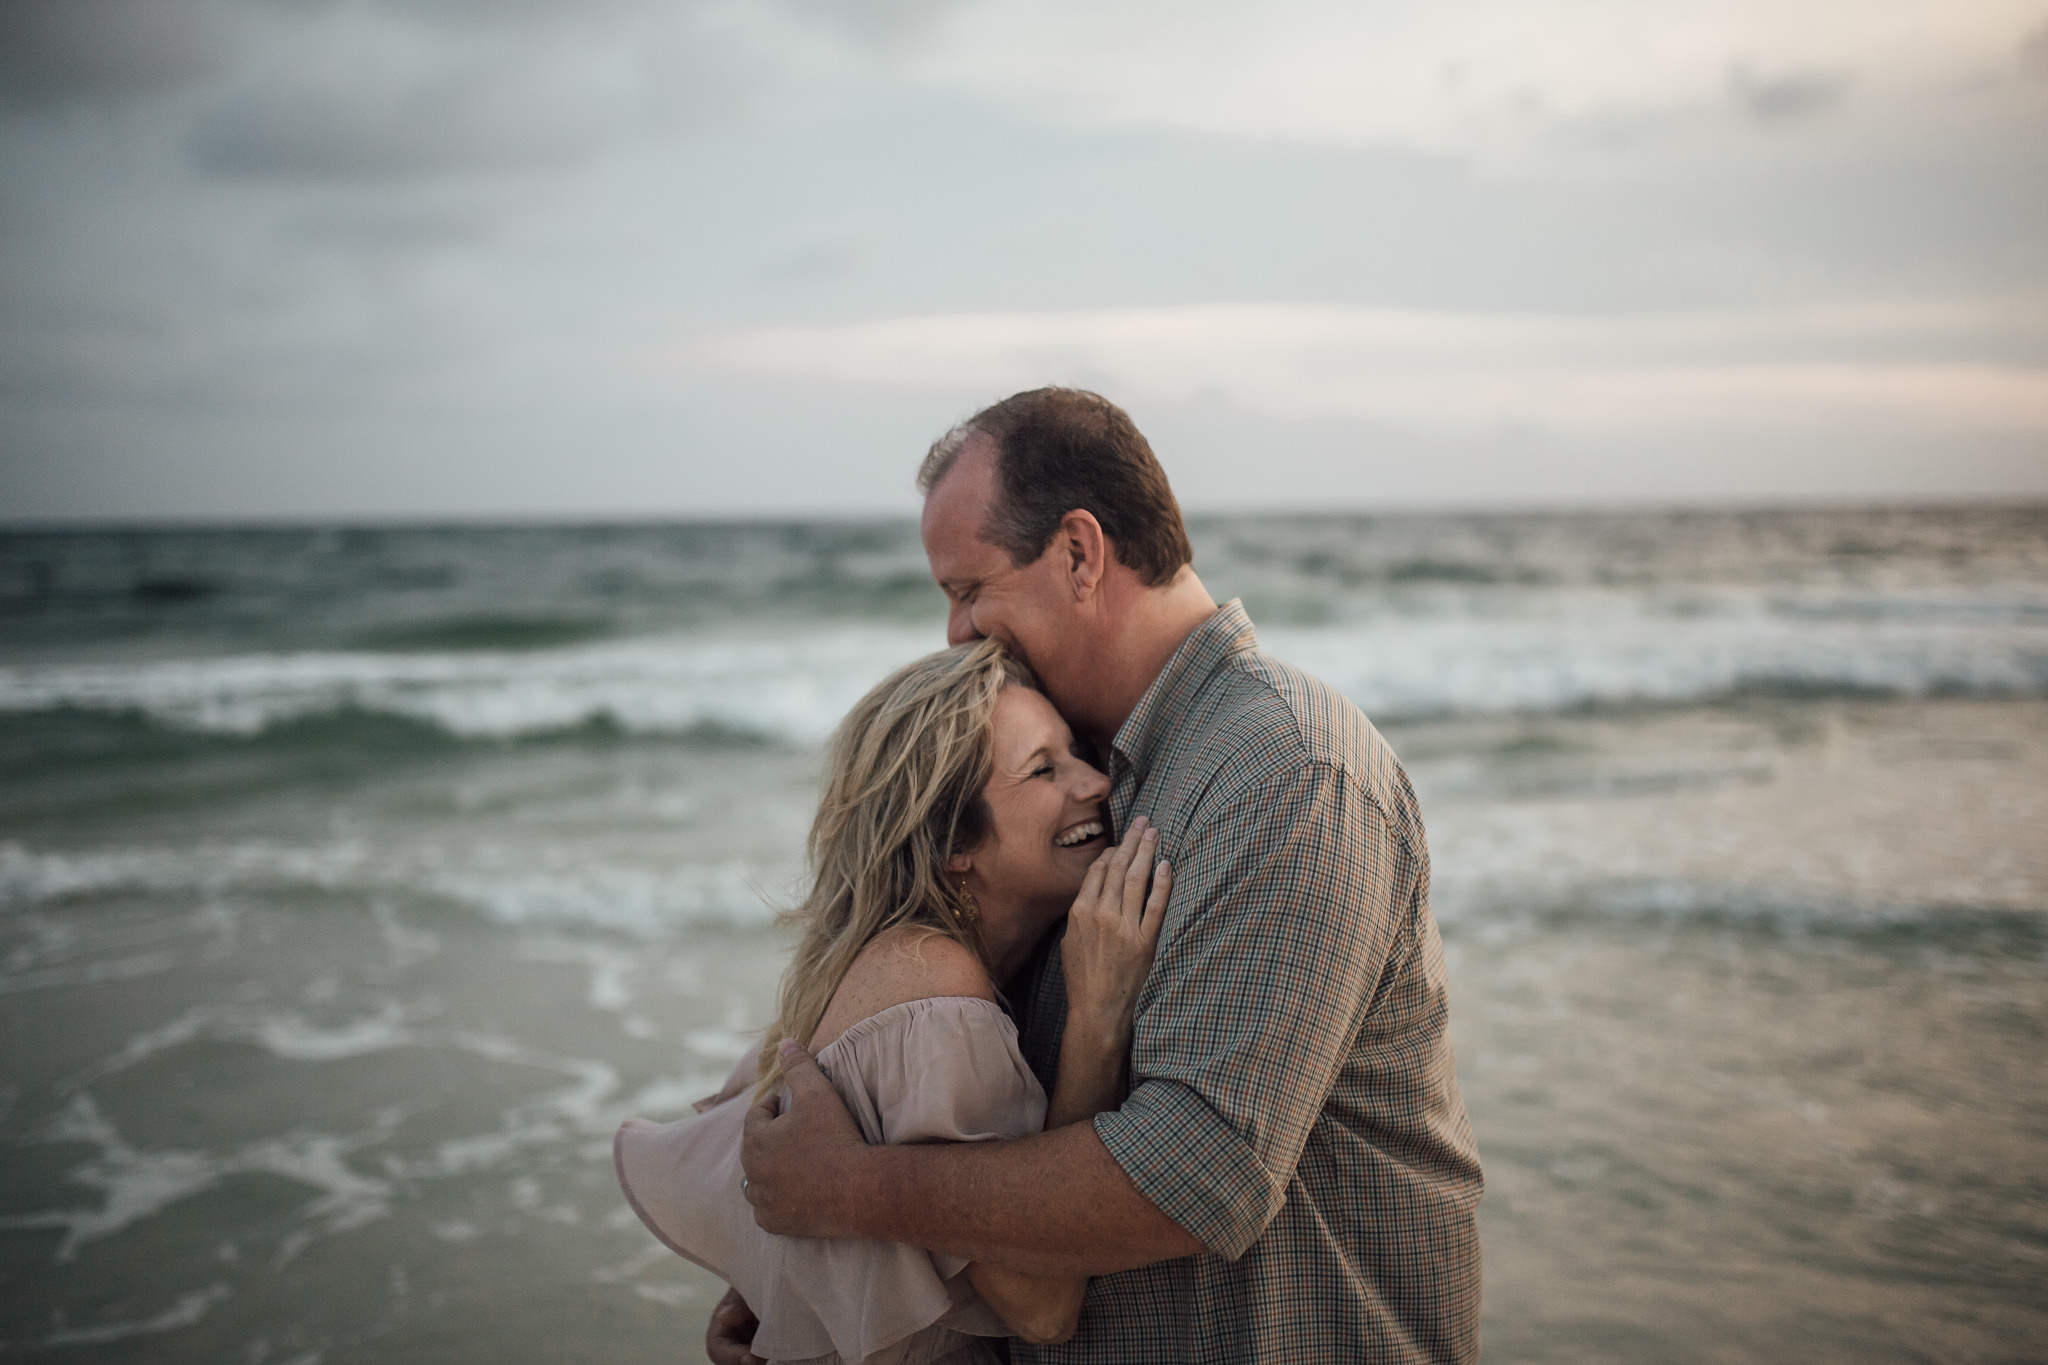 cassie-cook-photography-santa-rosa-beach-florida-couples-session-beach-photography-599.jpg